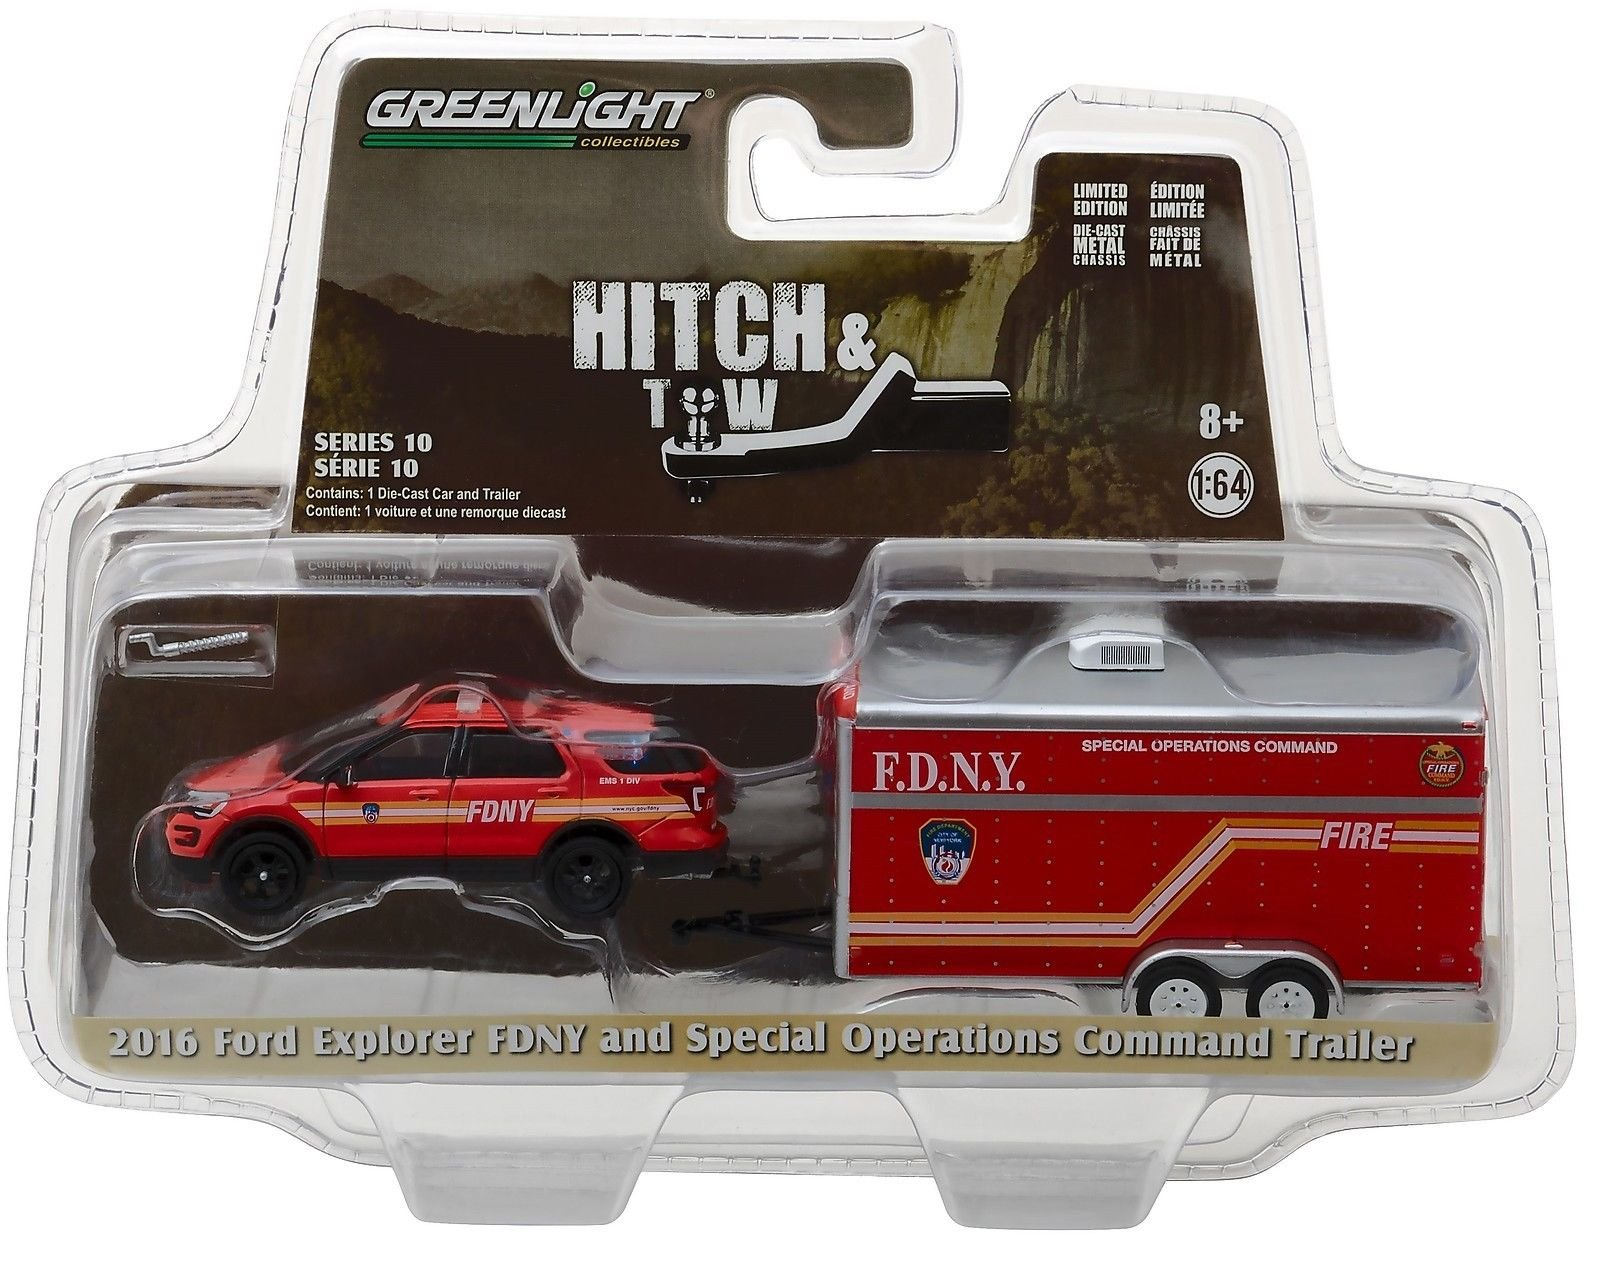 RED 2011 FORD NEW YORK CITY FIRE DEPARTMENT GREENLIGHT 1:64 SCALE DIECAST MODEL